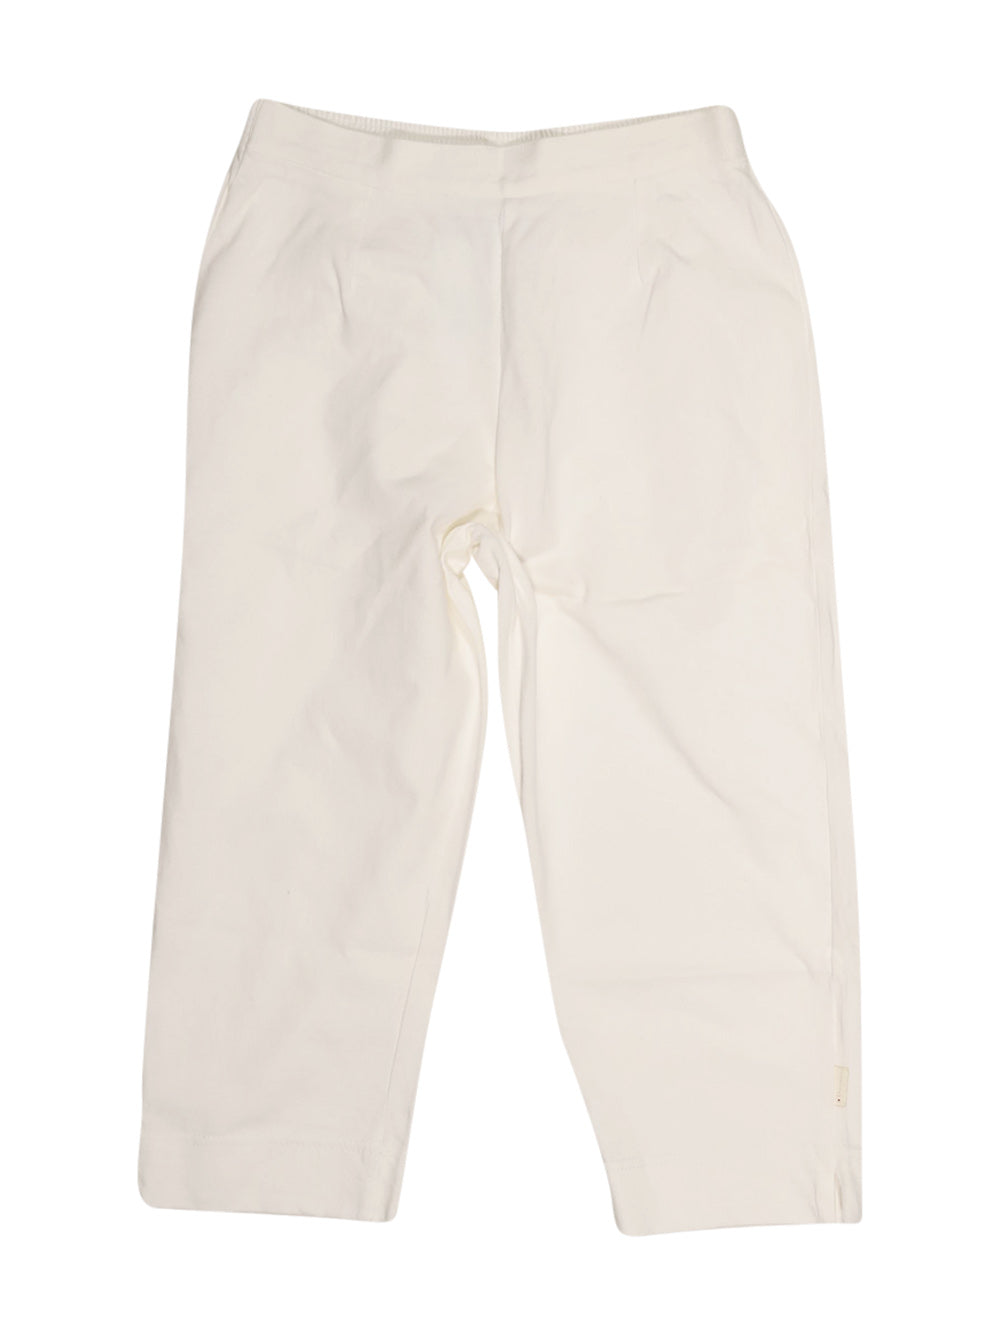 Front photo of Preloved Champion White Woman's sport trousers - size 10/M